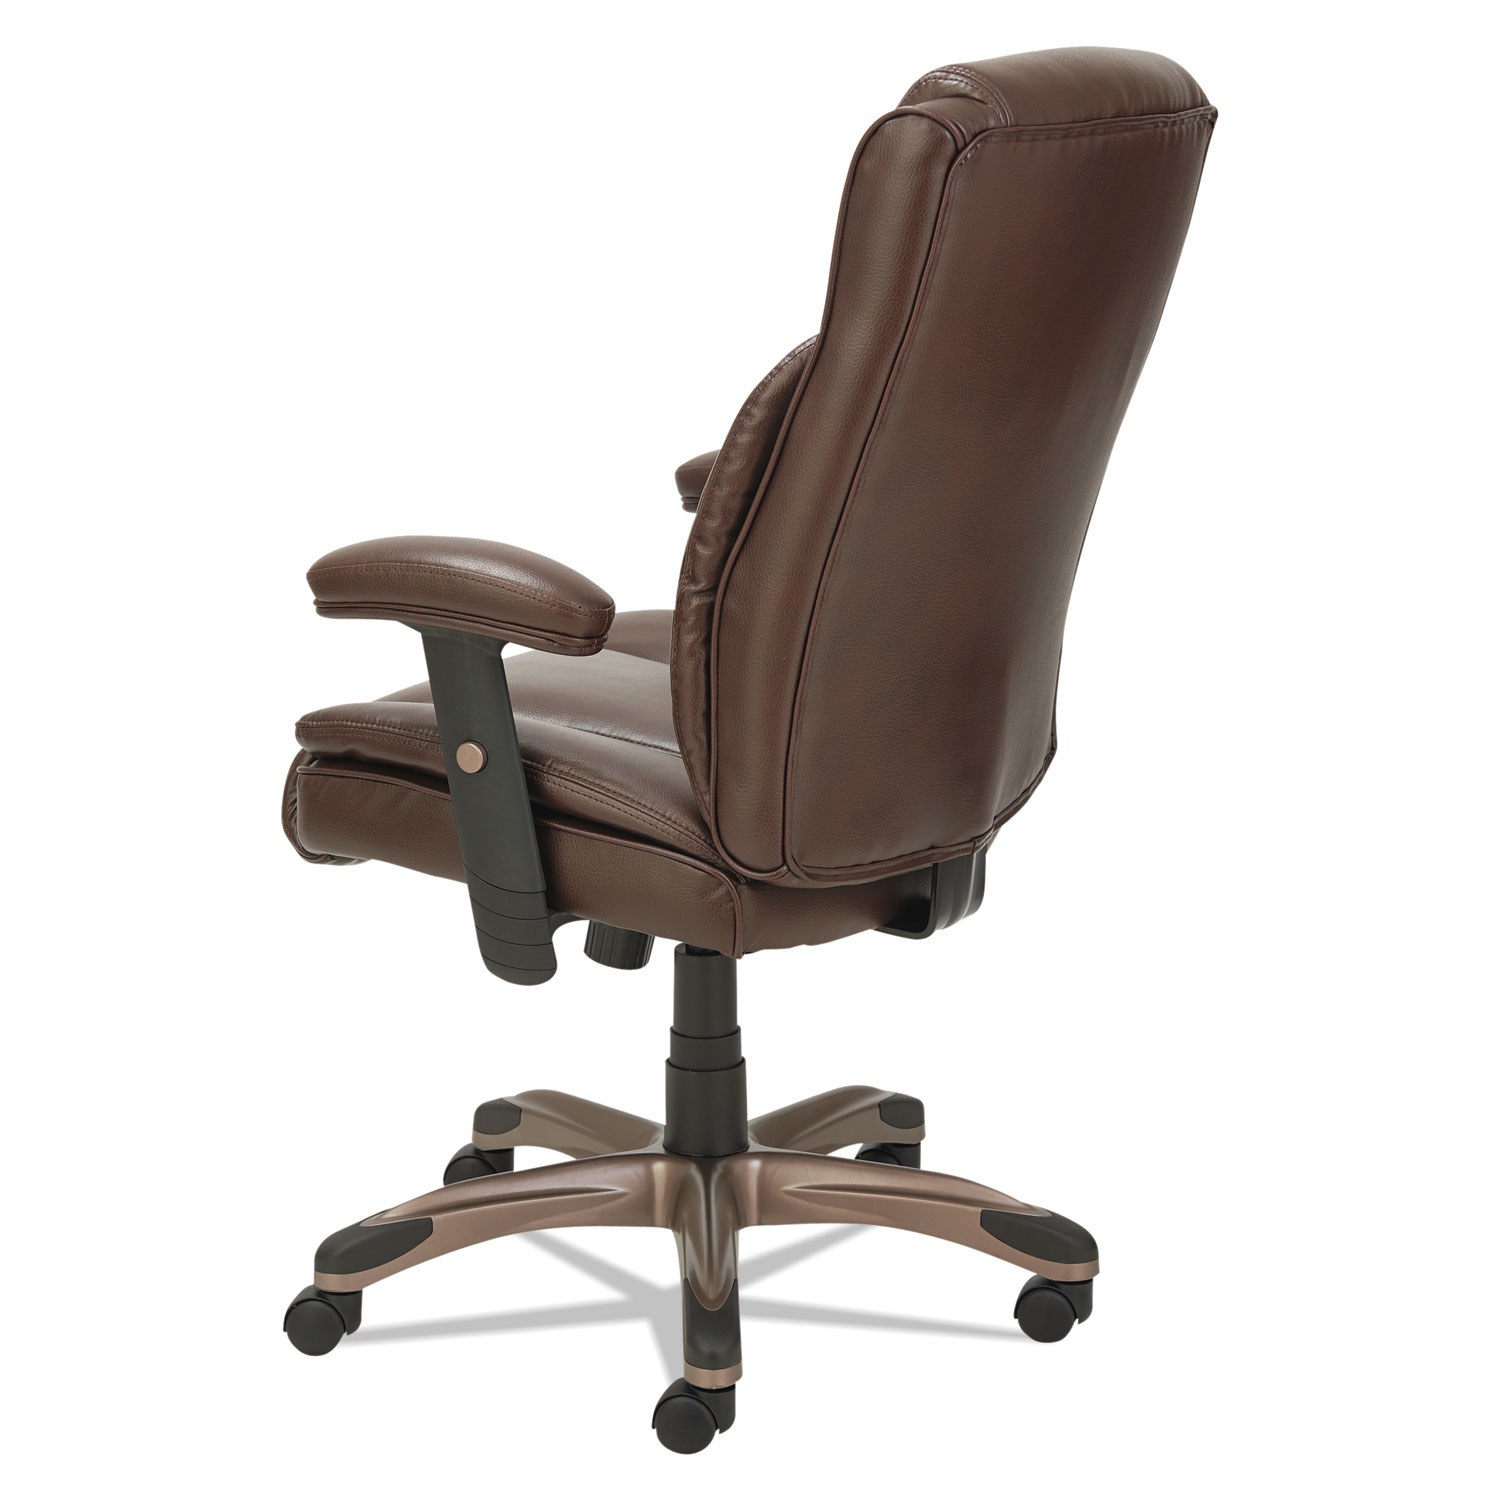 Spring Chair Alera Veon Series Leather Midback Manager S Chair W Coil Spring Cushioning Brown